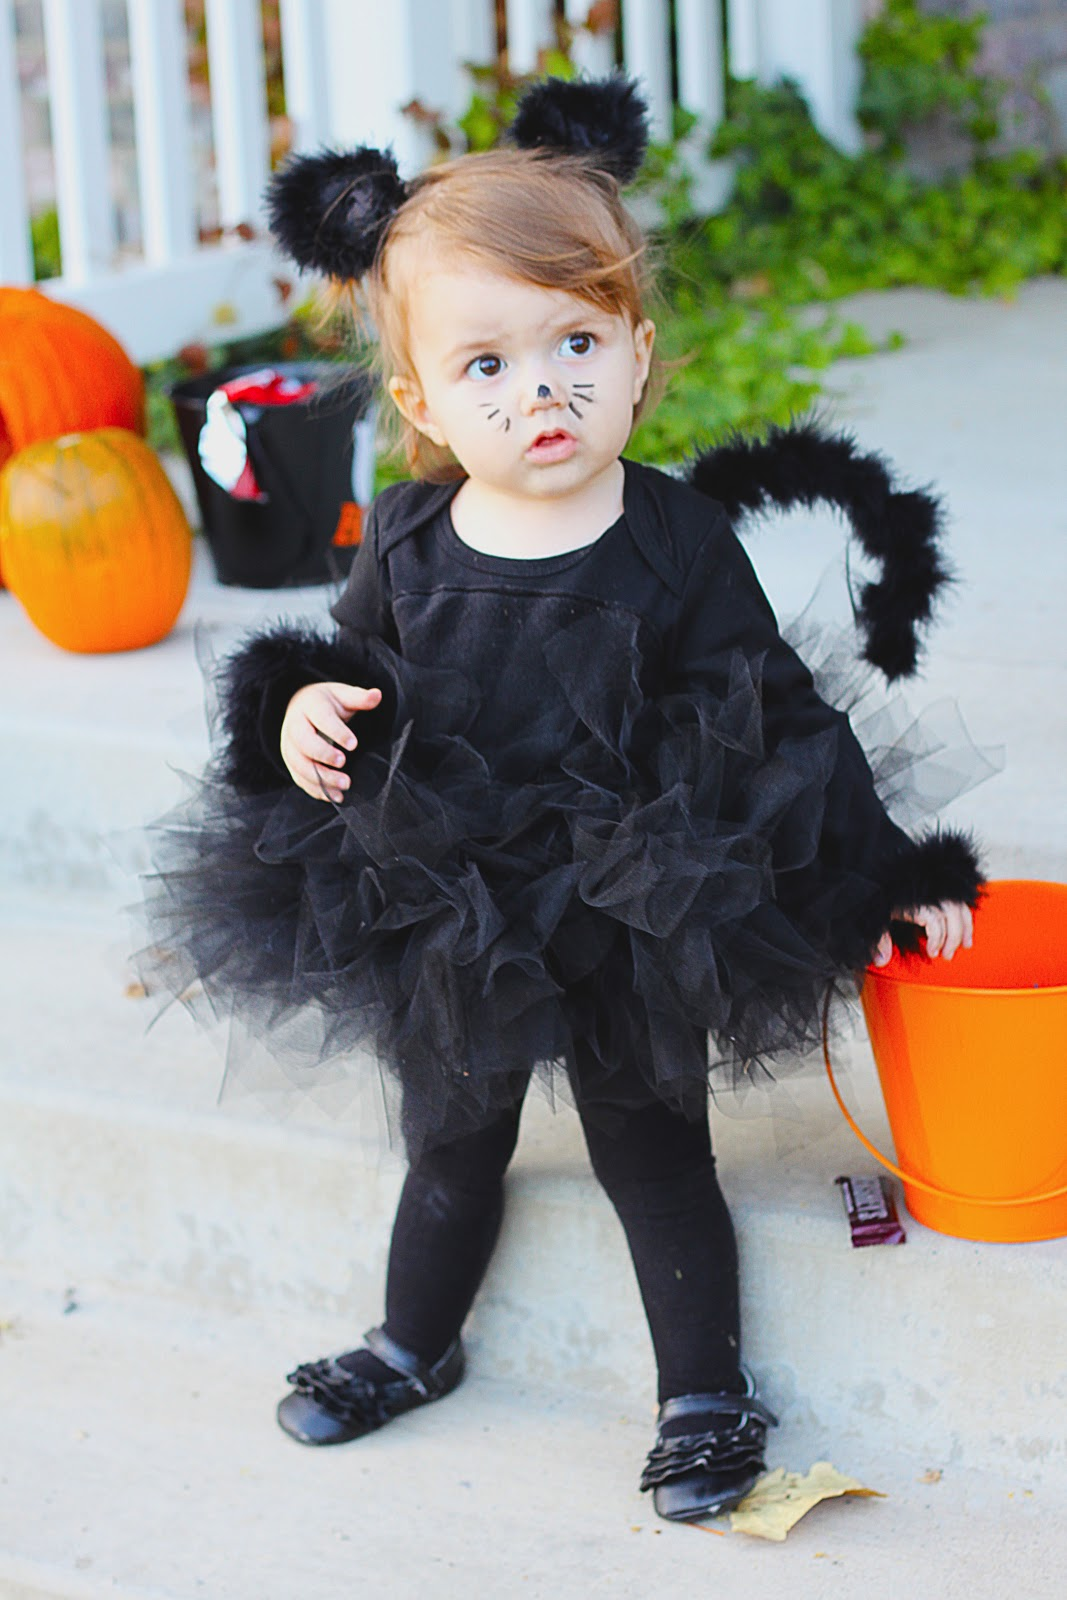 Do it yourself divas diy black cat costume how to make a cat costume for little girl the cutest halloween costume solutioingenieria Image collections